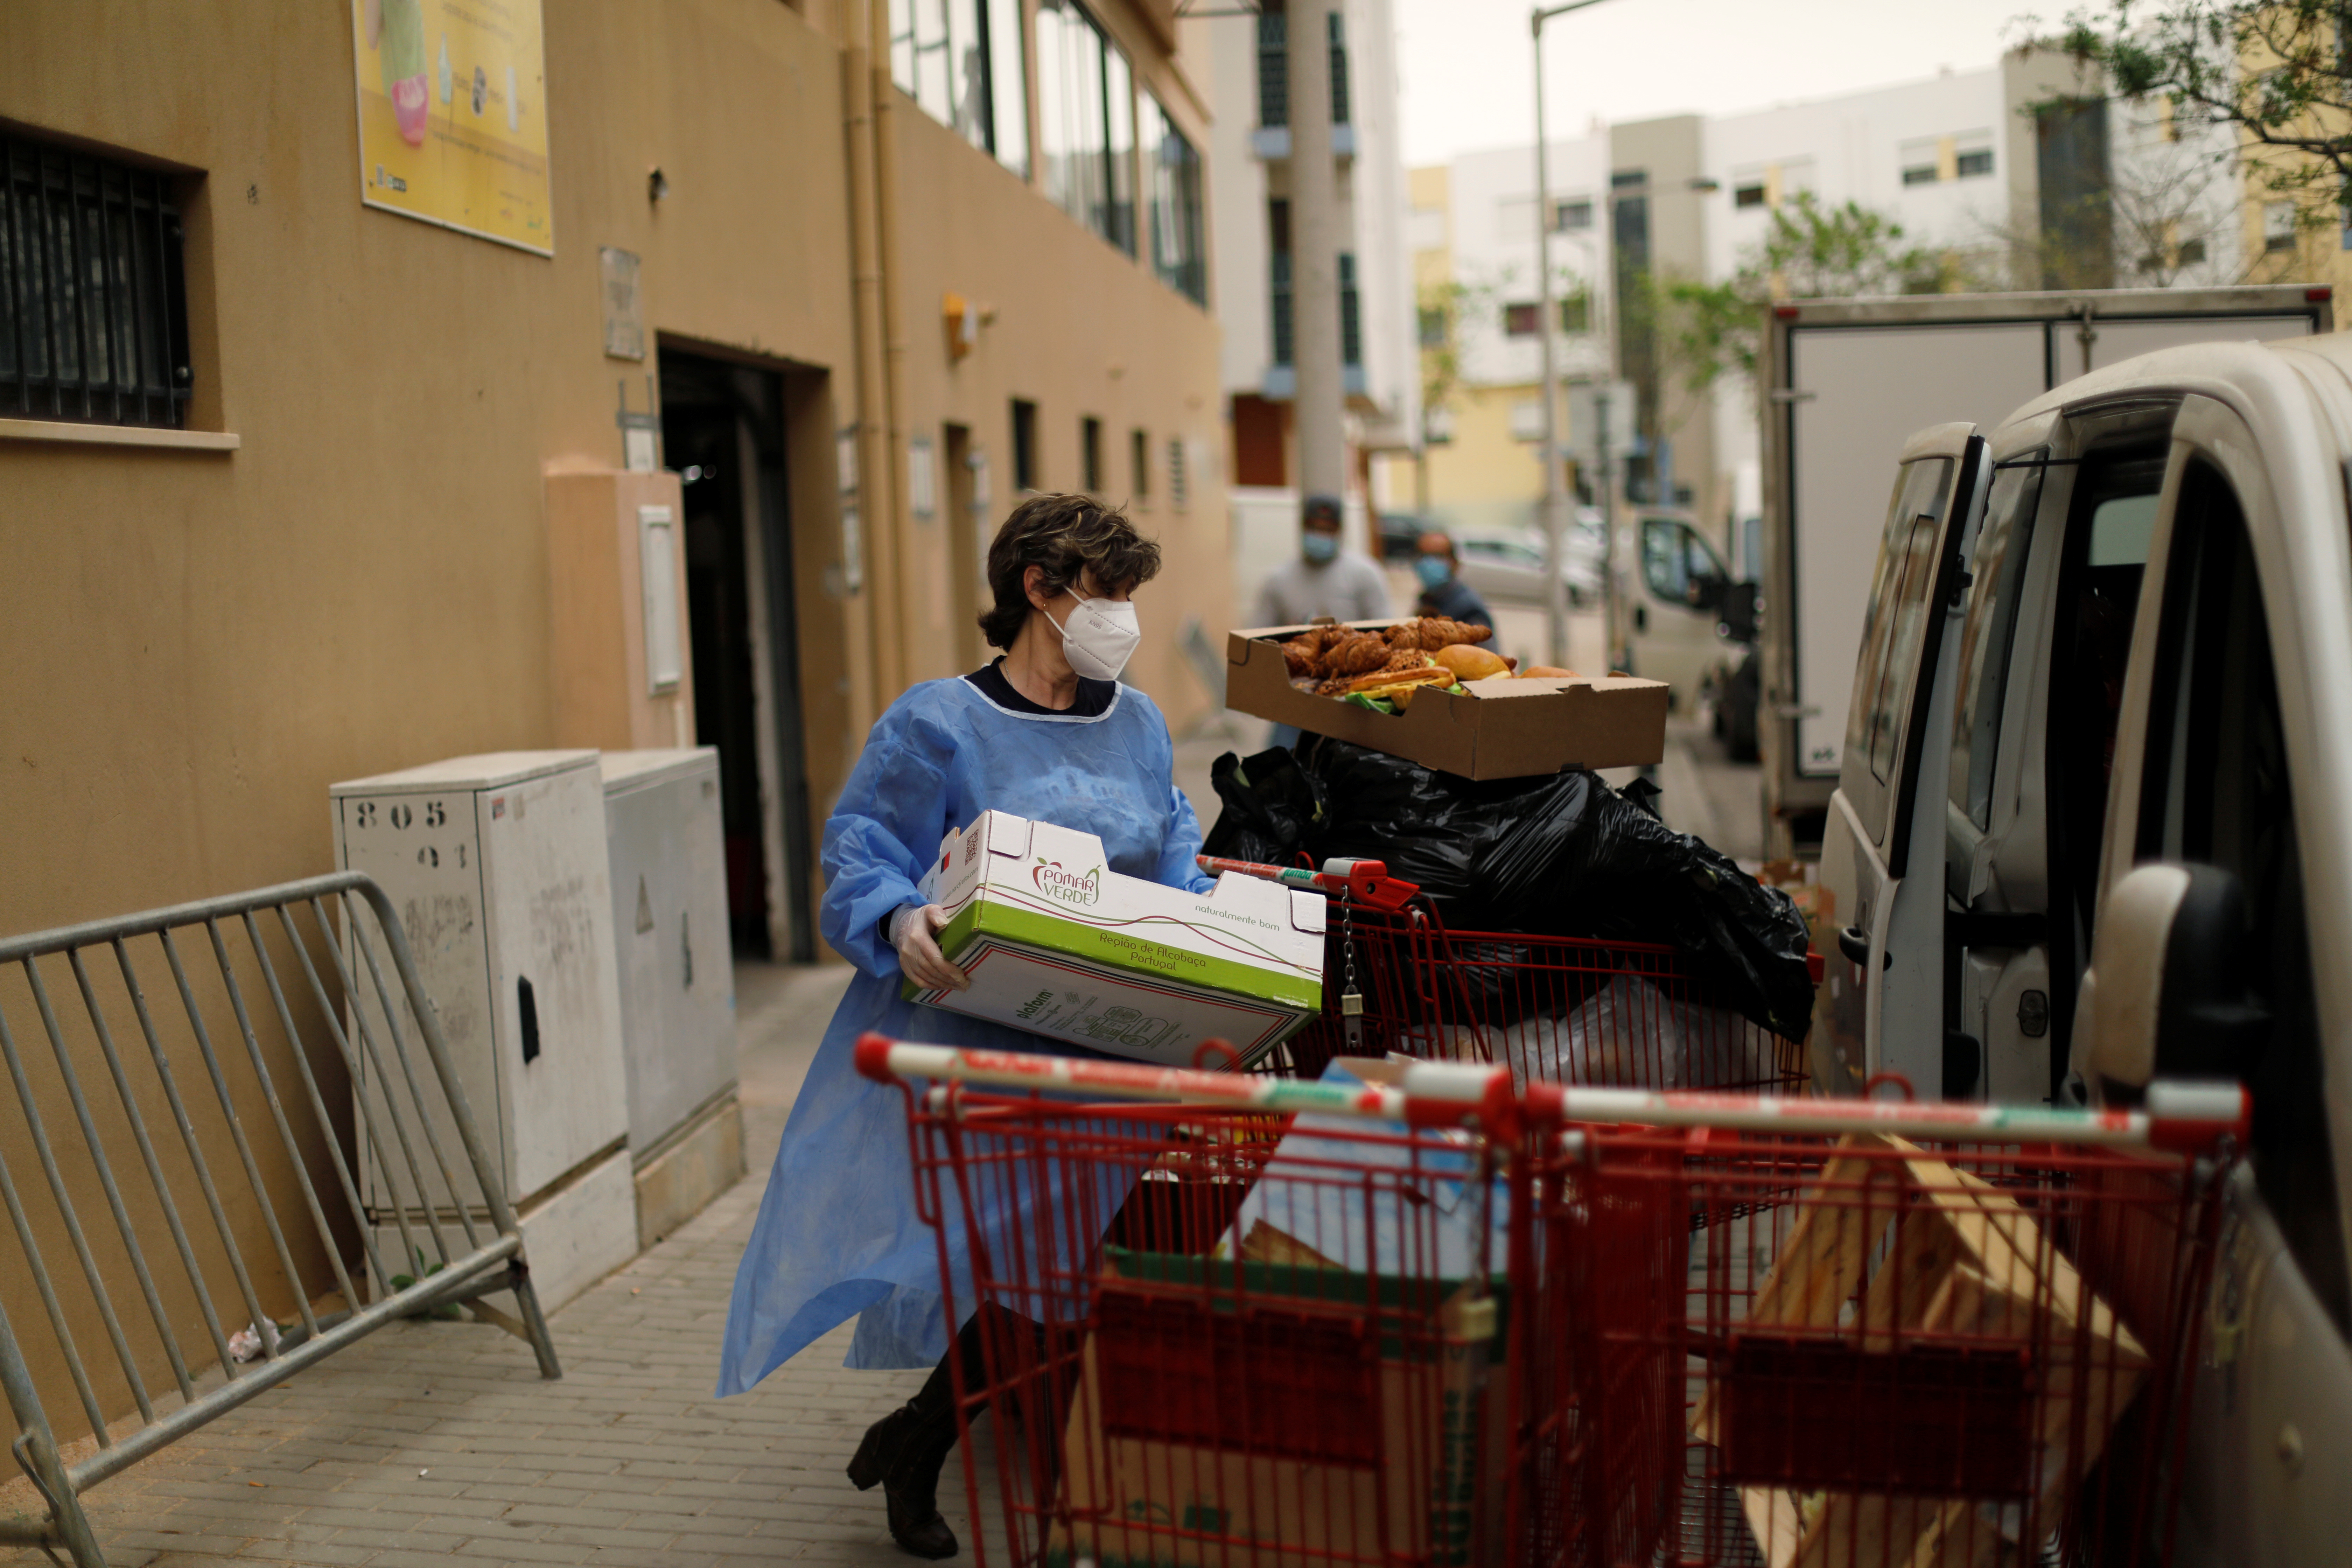 A woman carries goods collected on the Faro Food Bank Against Hunger to a truck, during the coronavirus disease (COVID-19) pandemic in Faro, Portugal, March 30, 2021. Picture taken March 30, 2021. REUTERS/Pedro Nunes